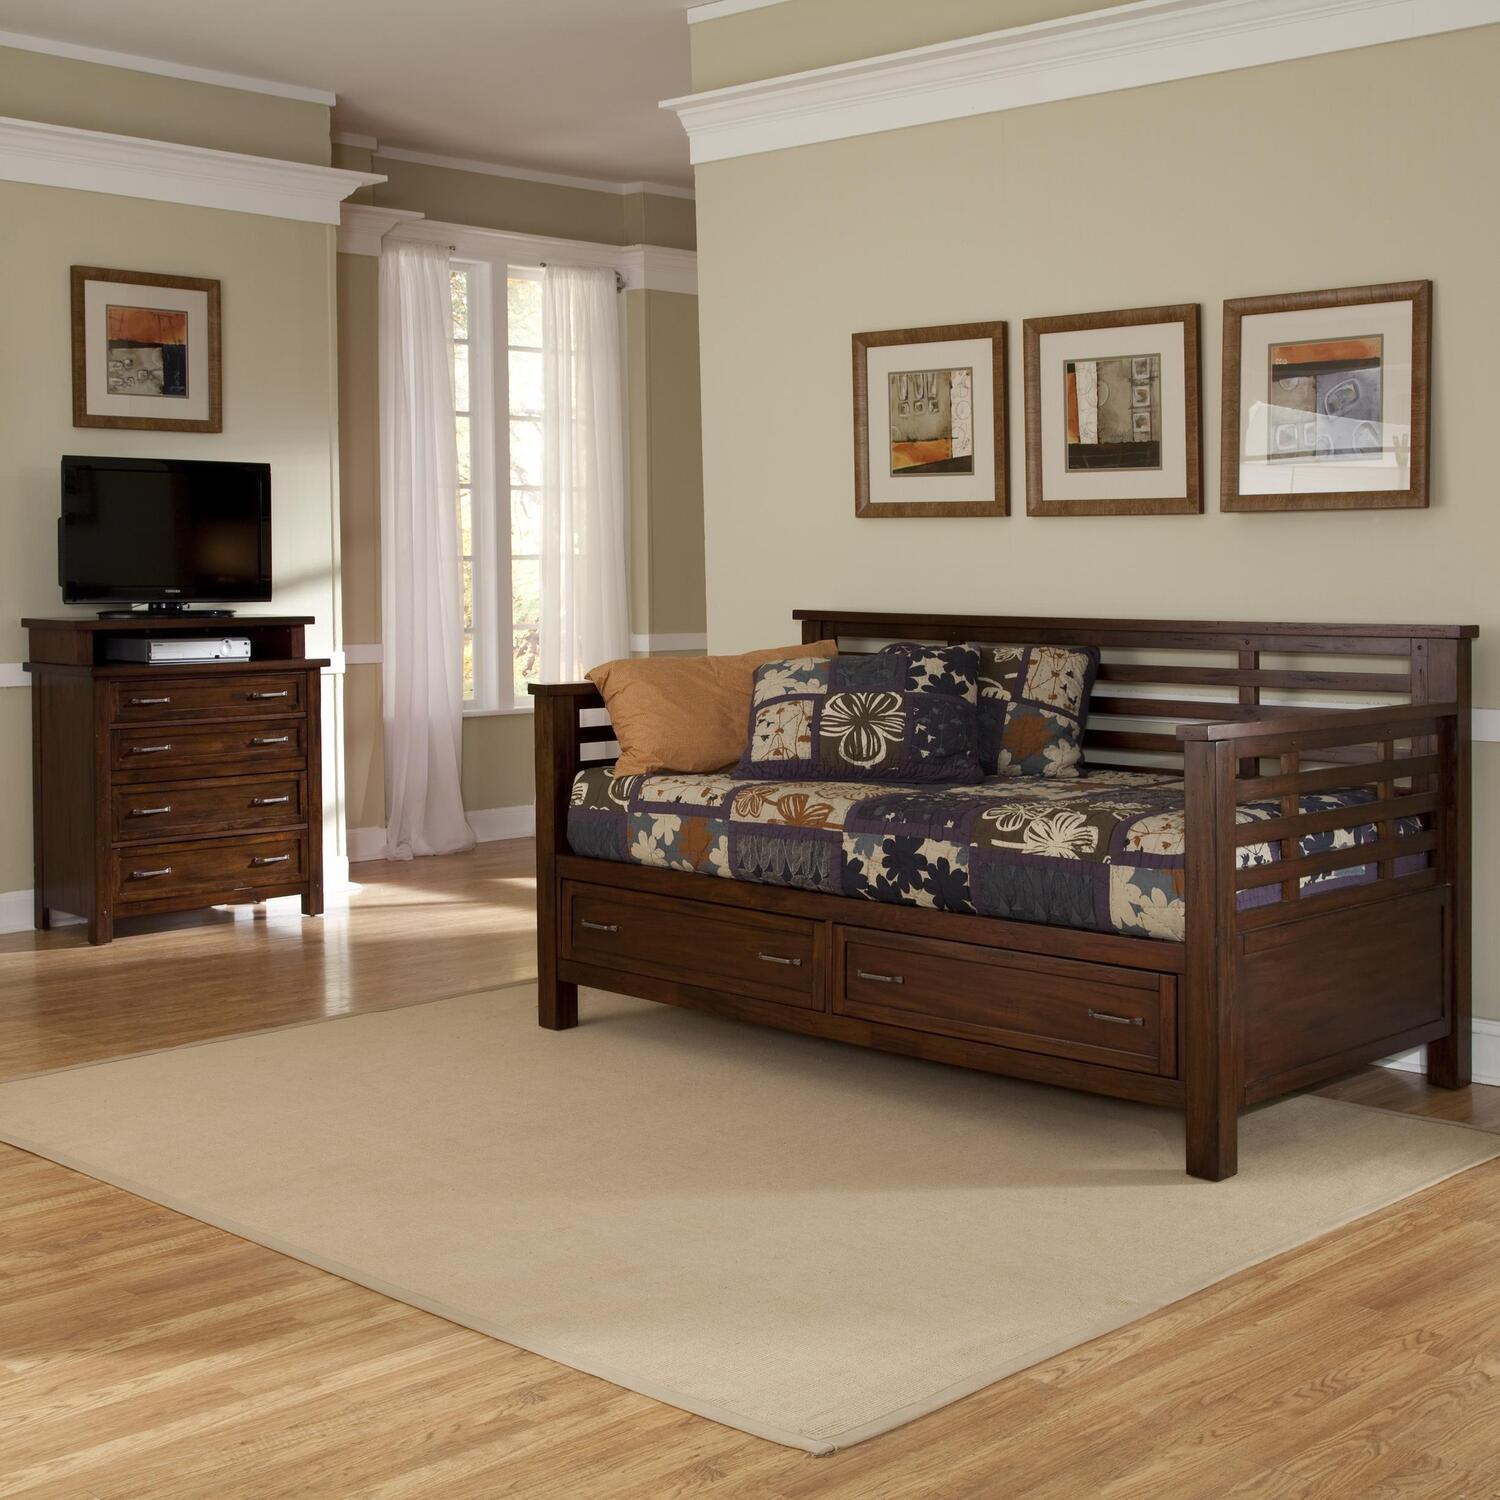 Home Styles Cabin Creek Storage Daybed And Media Chest By